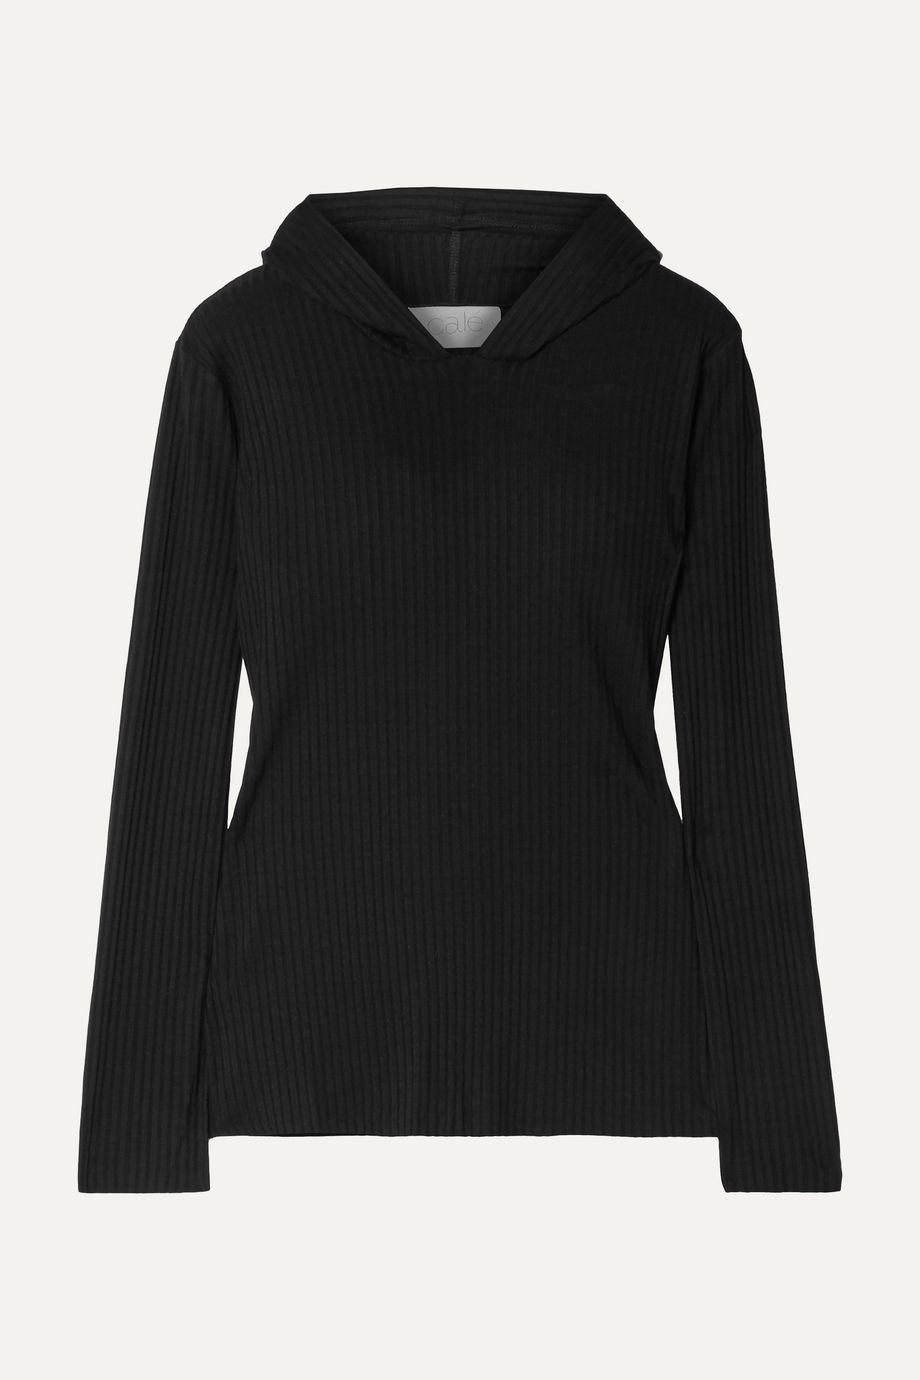 calé Angelique ribbed stretch-jersey hoodie